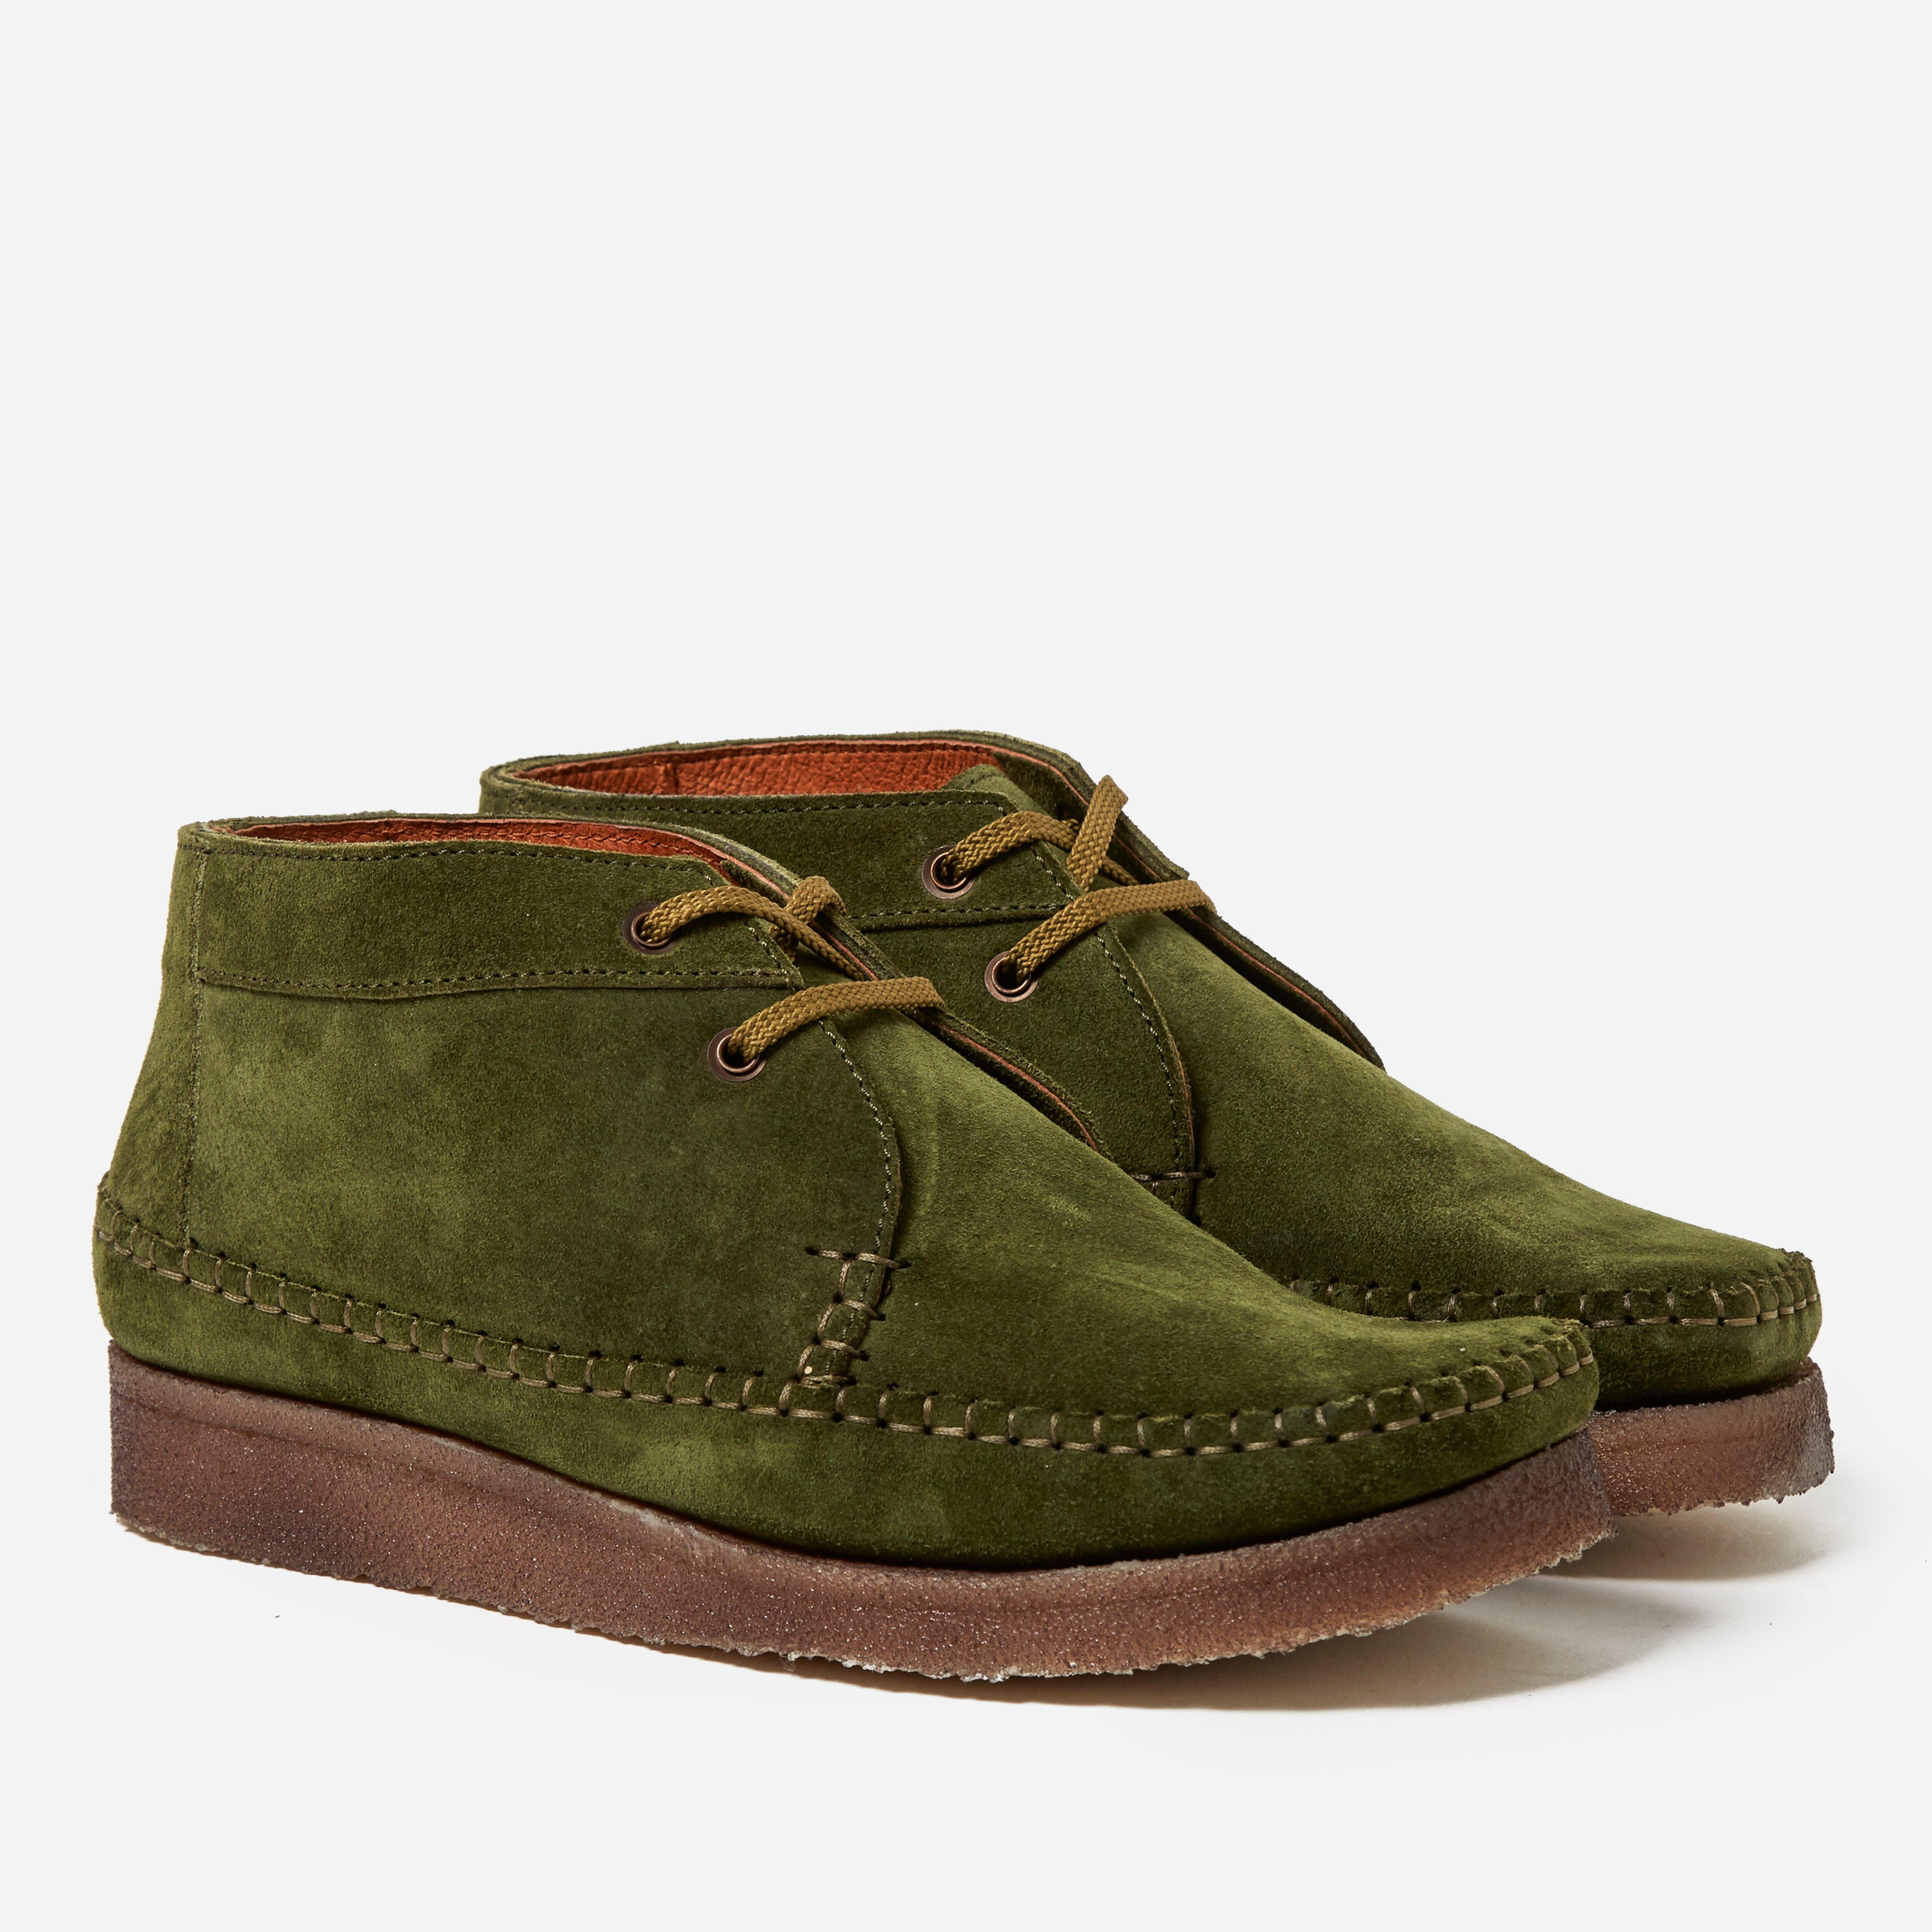 Padmore & Barnes P700 Willow Boot Suede